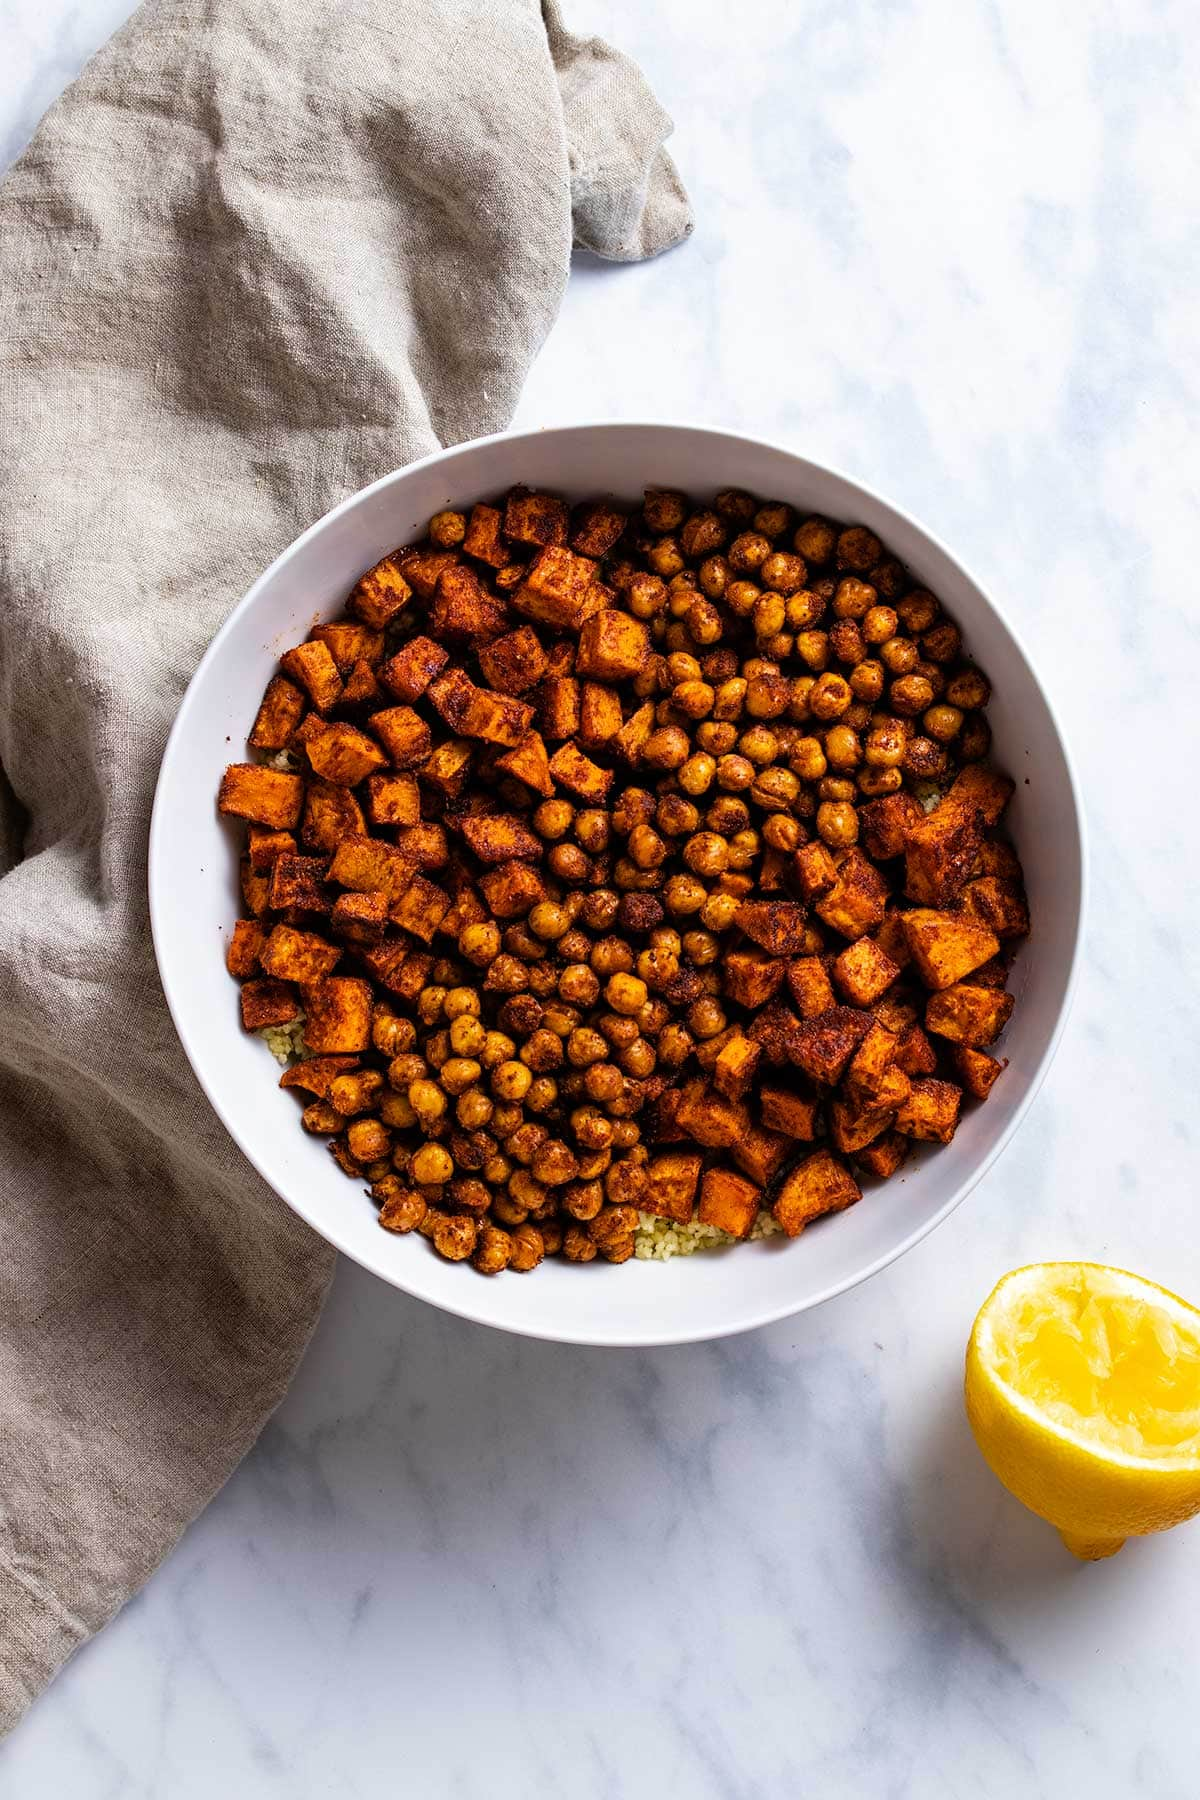 roasted chickpeas and diced sweet potato covered in moroccan spices on top of couscous in a white bowl next to a brown linen and half a lemon